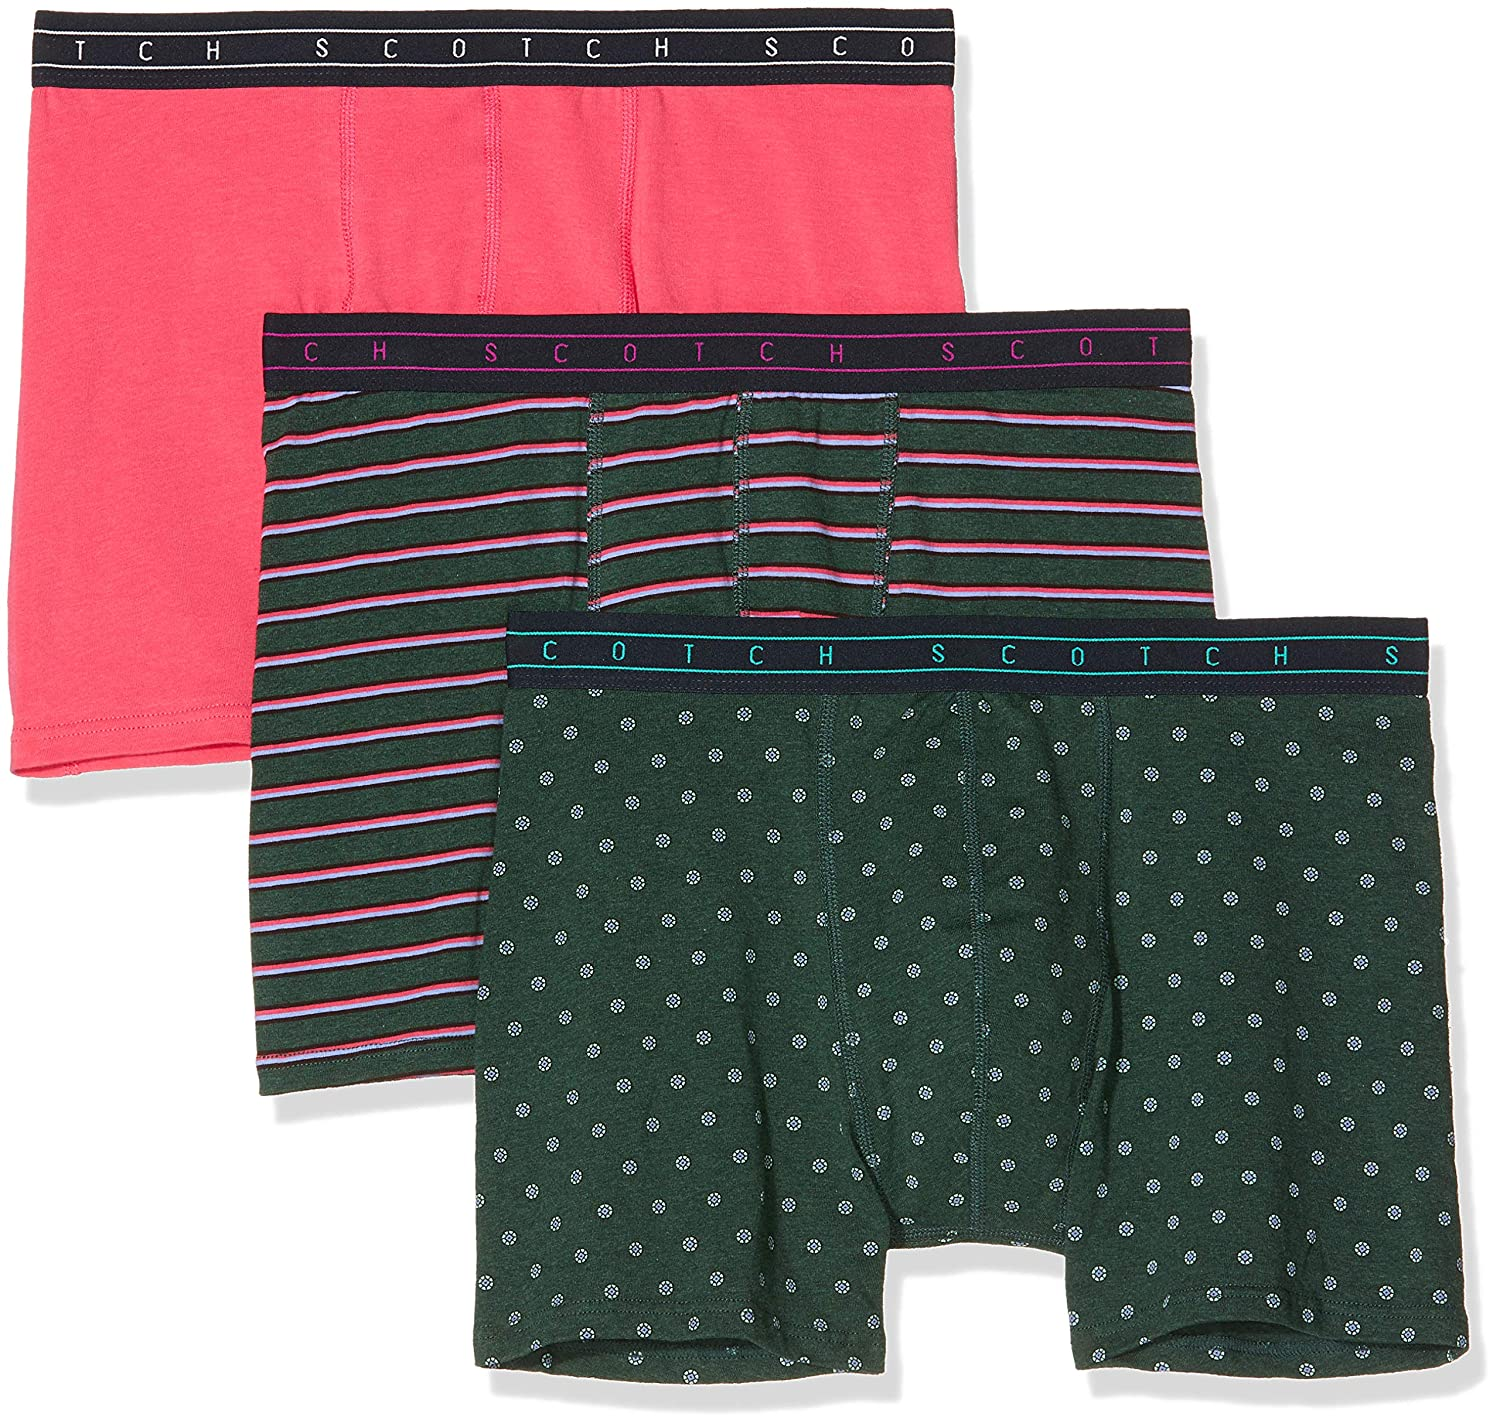 Green//Cerise Stripe and Geo Print Mens Boxer Briefs Gift Set Scotch /& Soda 3-Pack Solid